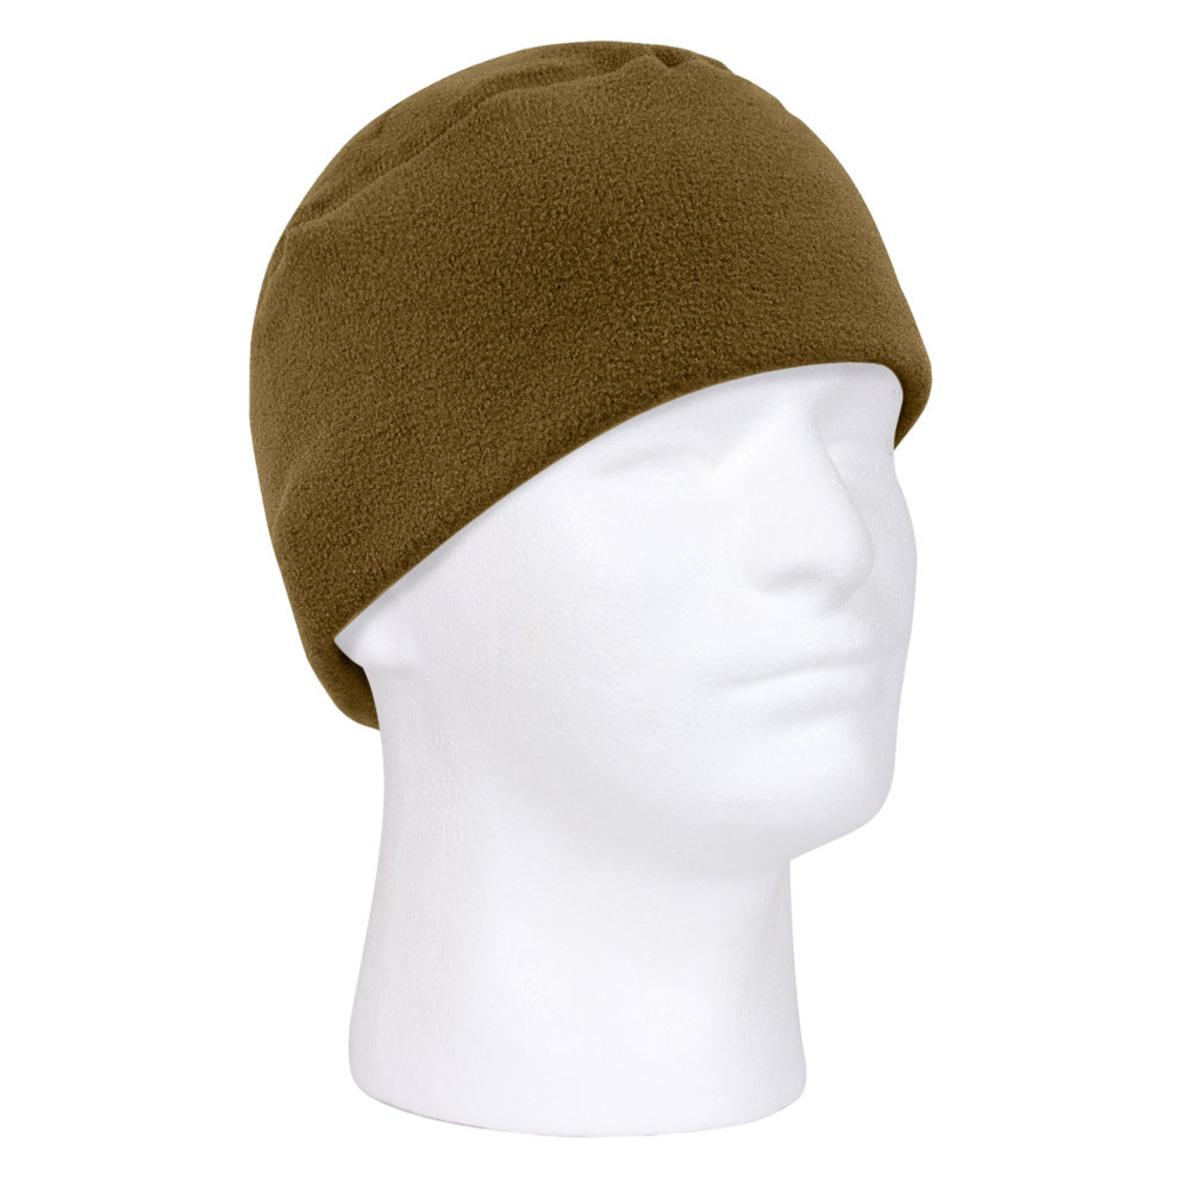 ed677f61aac Warm Polar Fleece Military Style Watch Cap or Beanie - Walmart.com